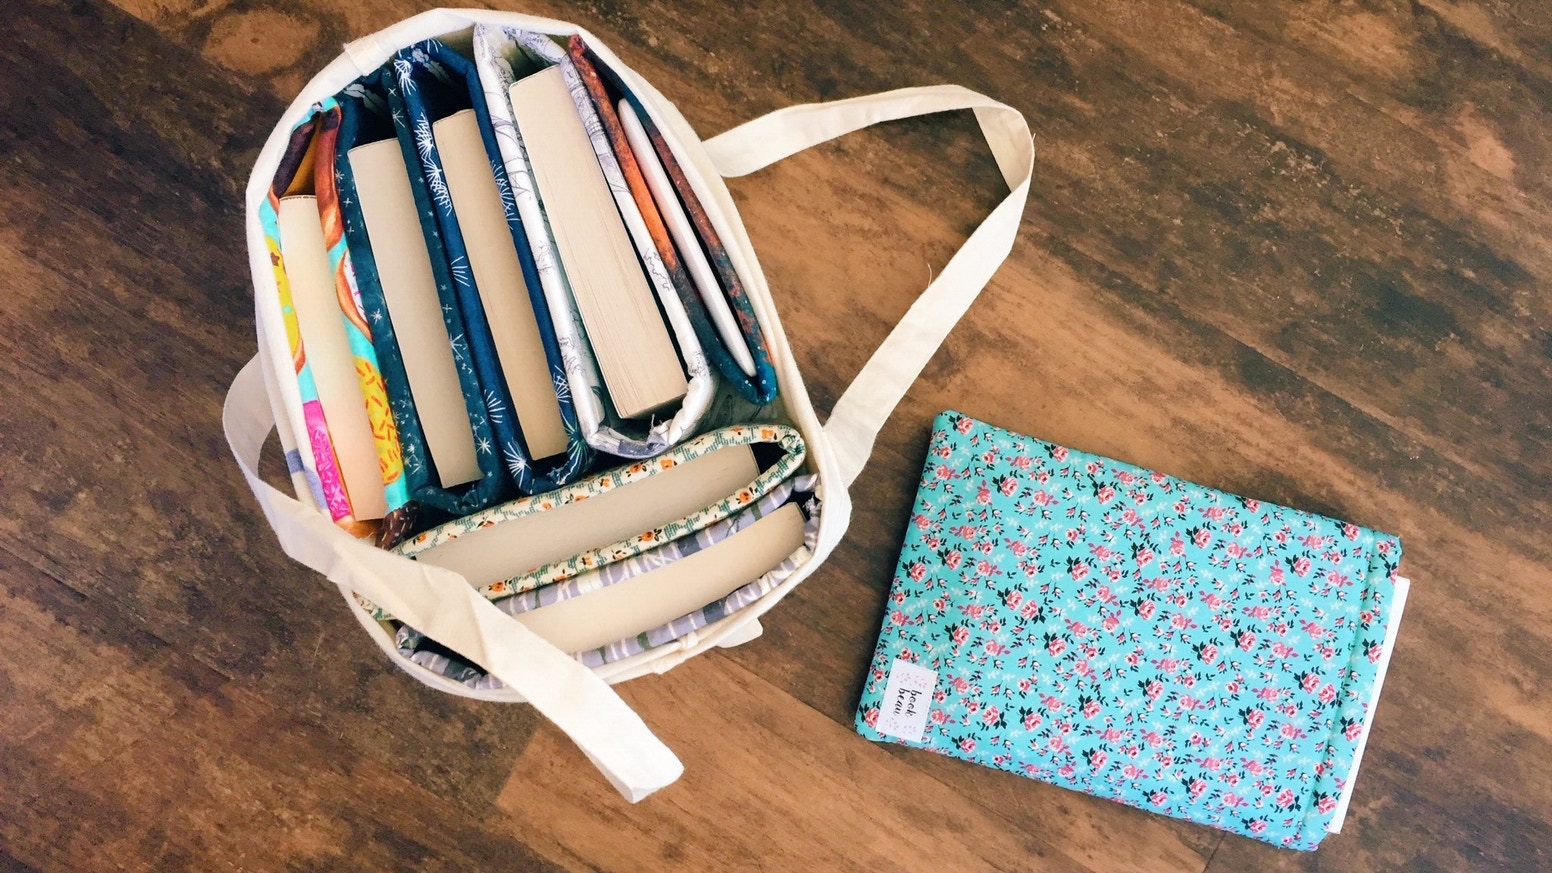 A water and stain resistant sleeve, that protects your books and makes them look beautiful.